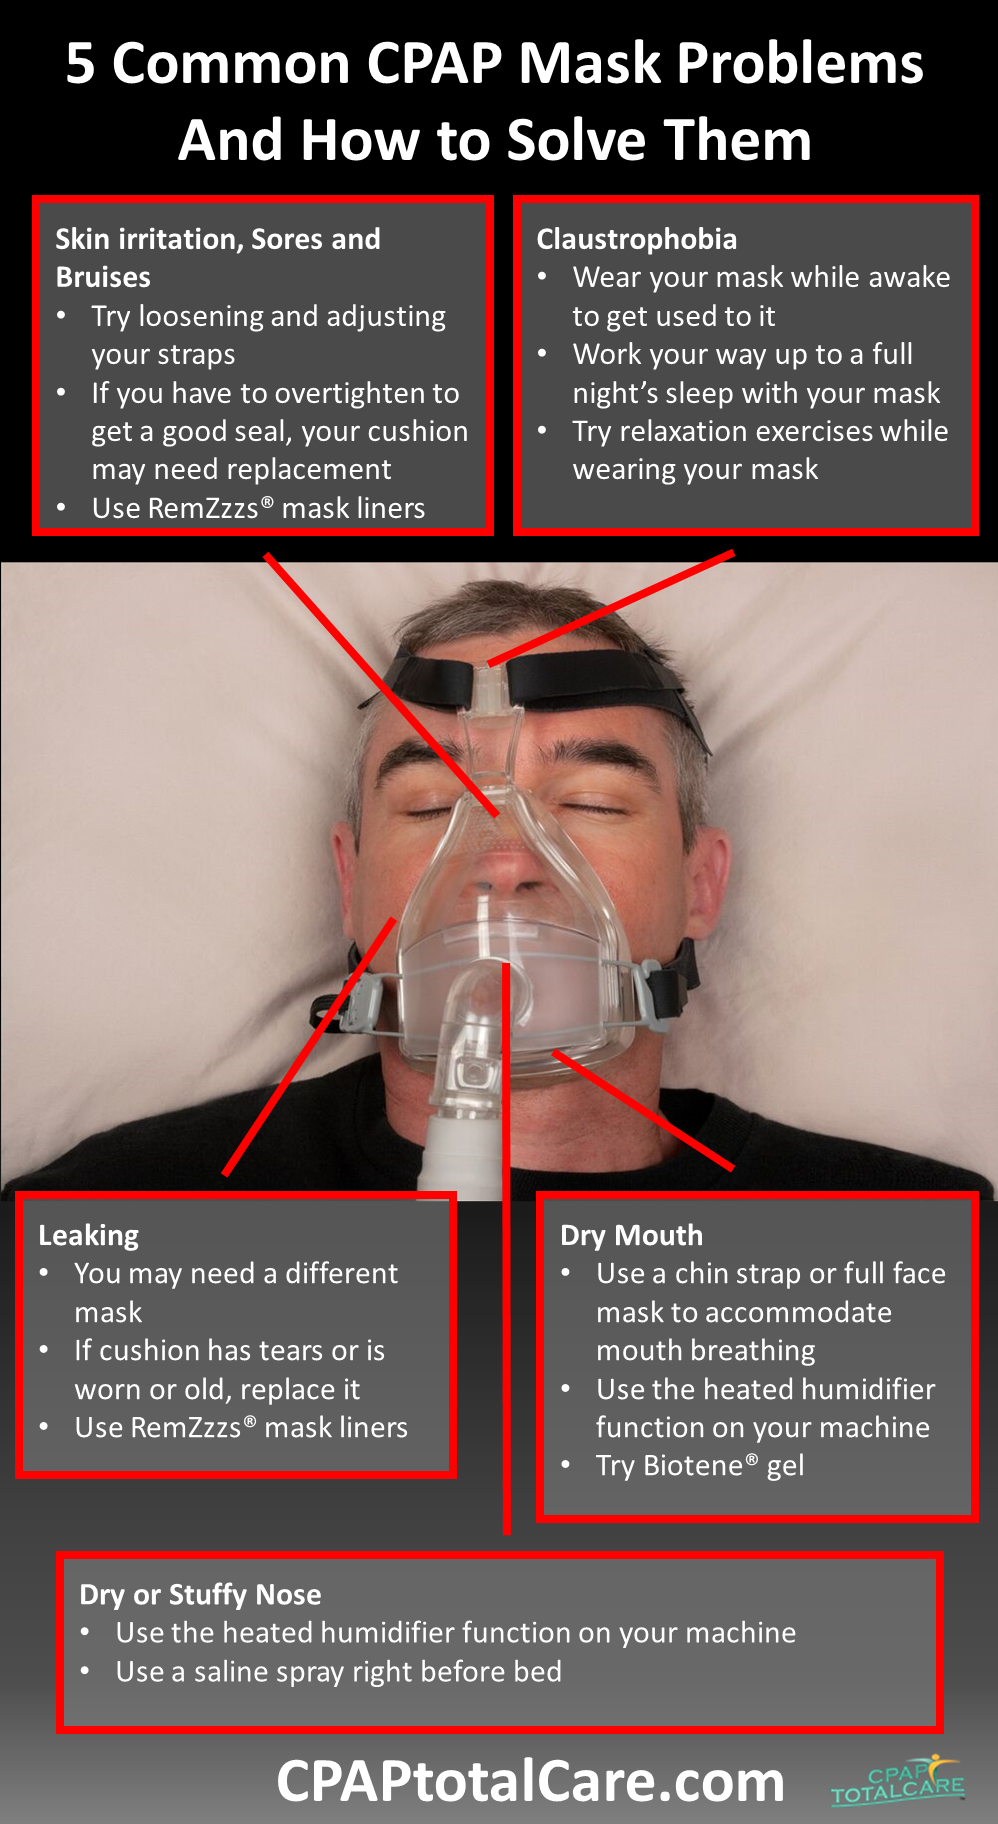 CPAP mask problems